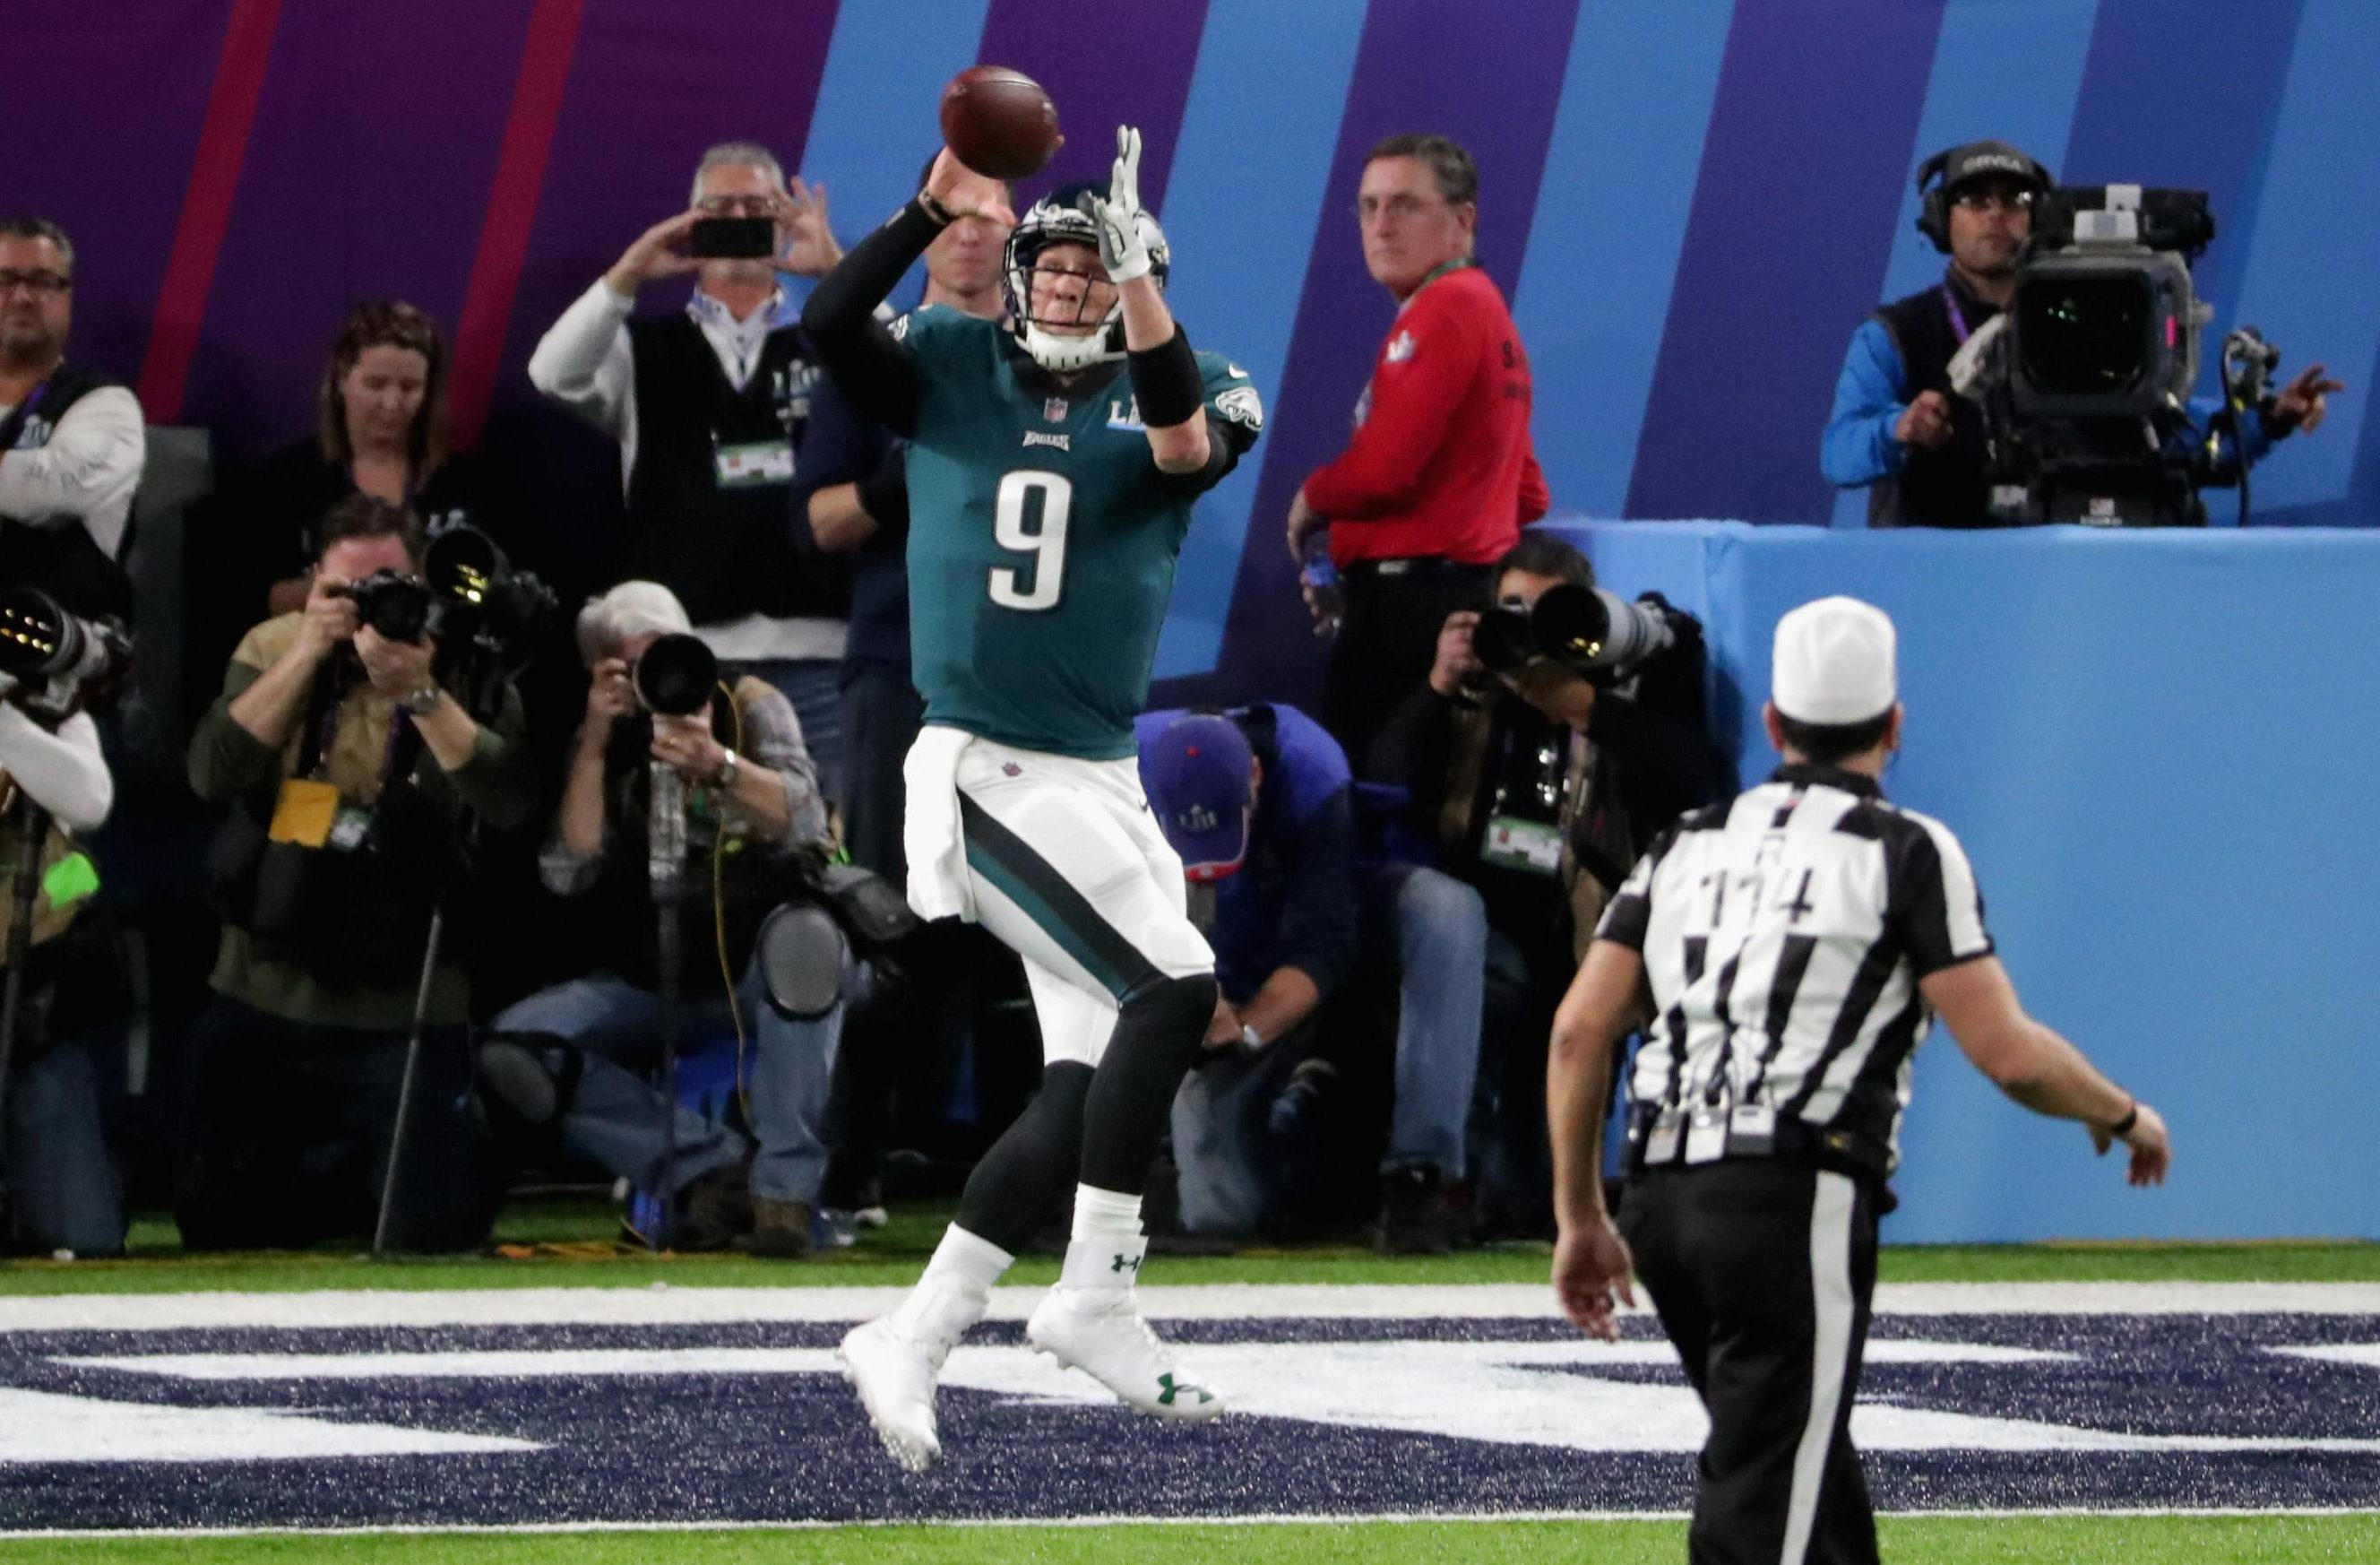 Philly quarterback Nick Foles caught a touchdown pass in the first half